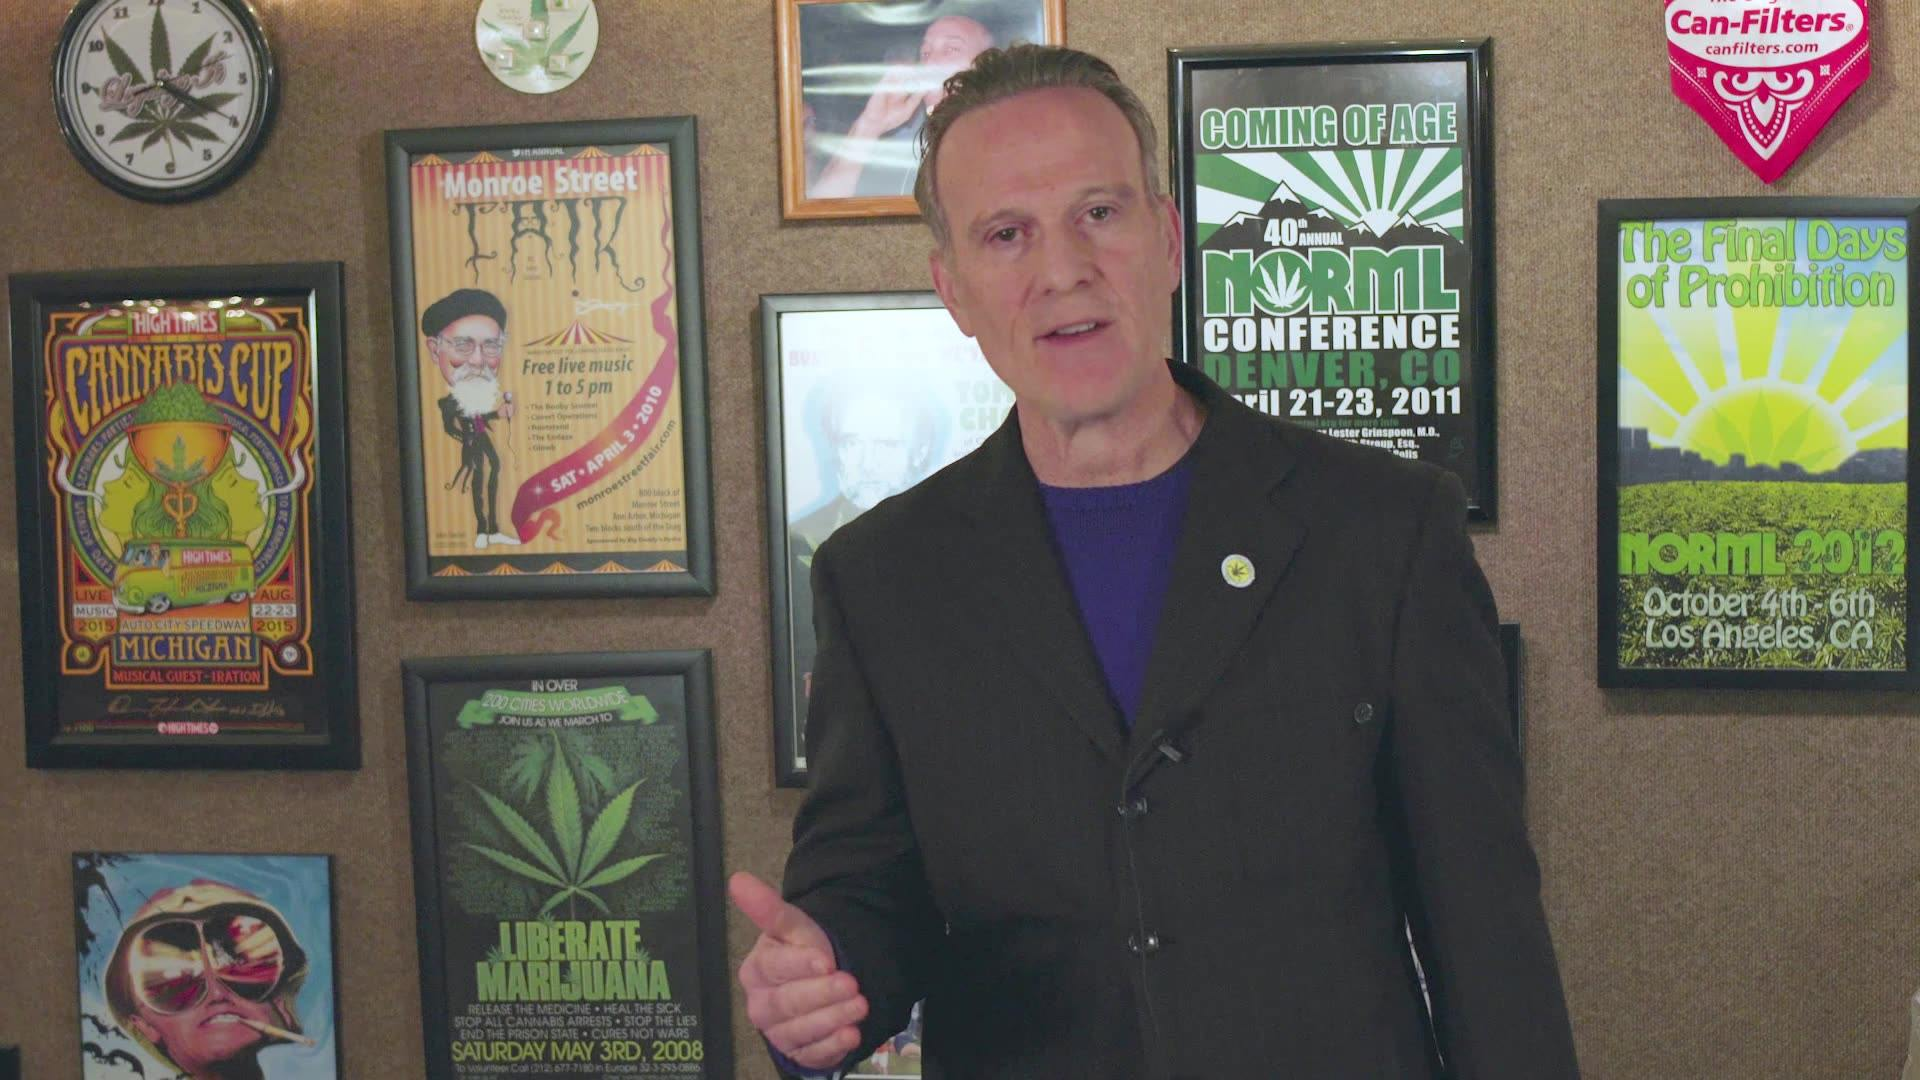 The legal marijuana market is ripe in MI! The state will begin accepting new licensing applications this summer, don't wait to get started. Call us today and see how we can help your business grow!  - 313-446-2235Thomas Lavigne Matthew Abel